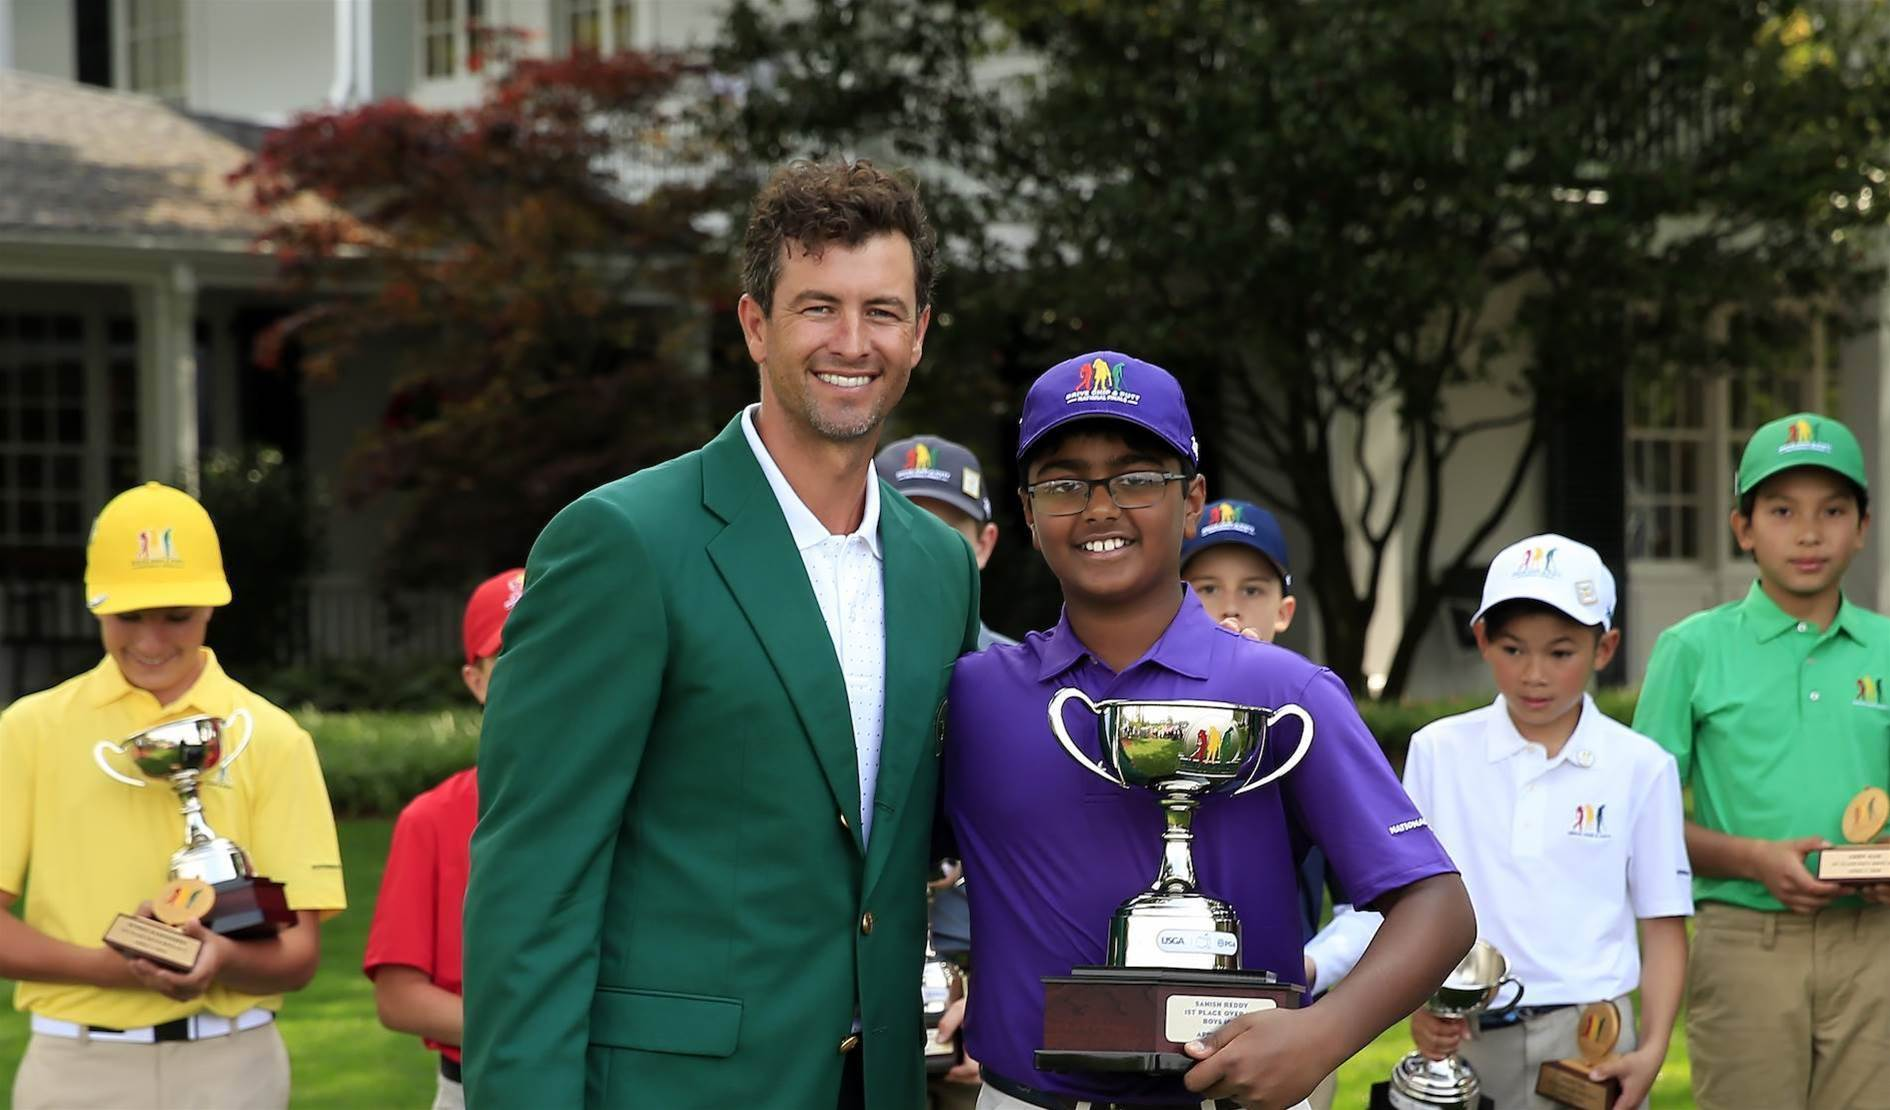 Family focused Scott at peace at Augusta